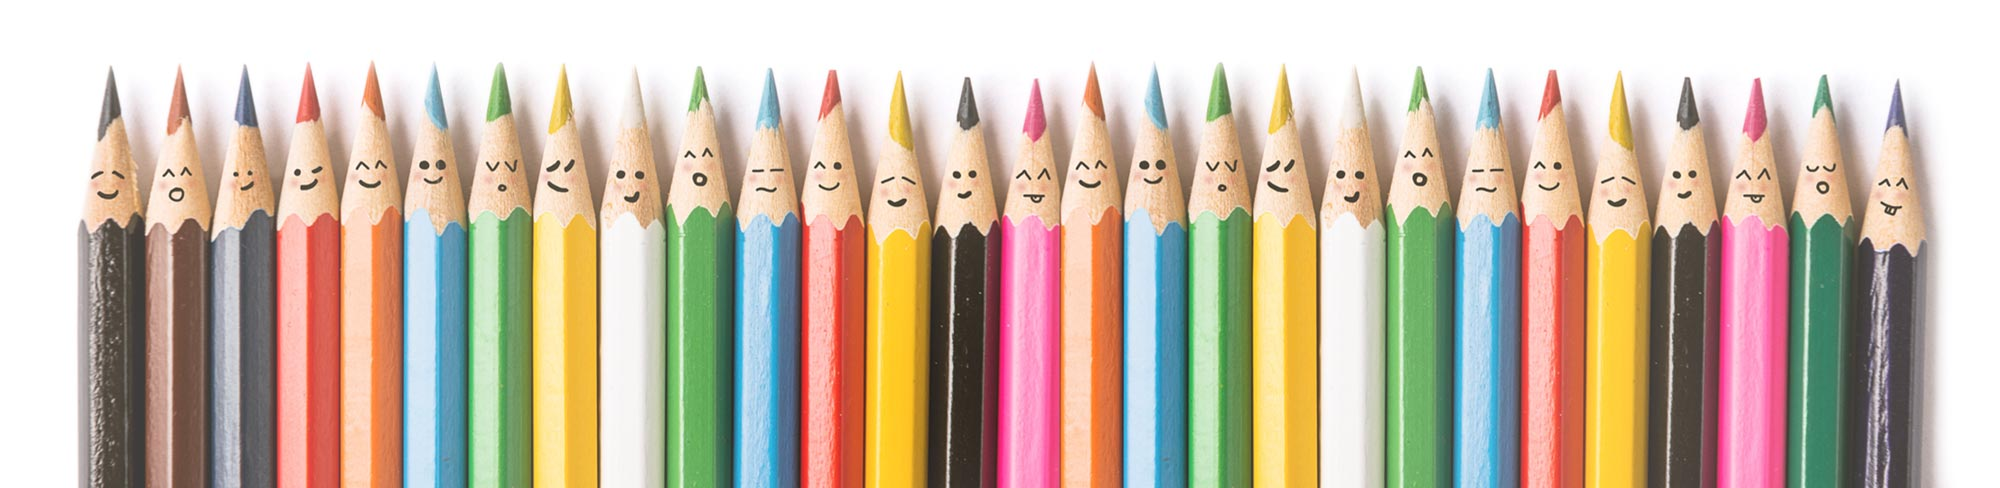 Colored Pencils Representing Diversity